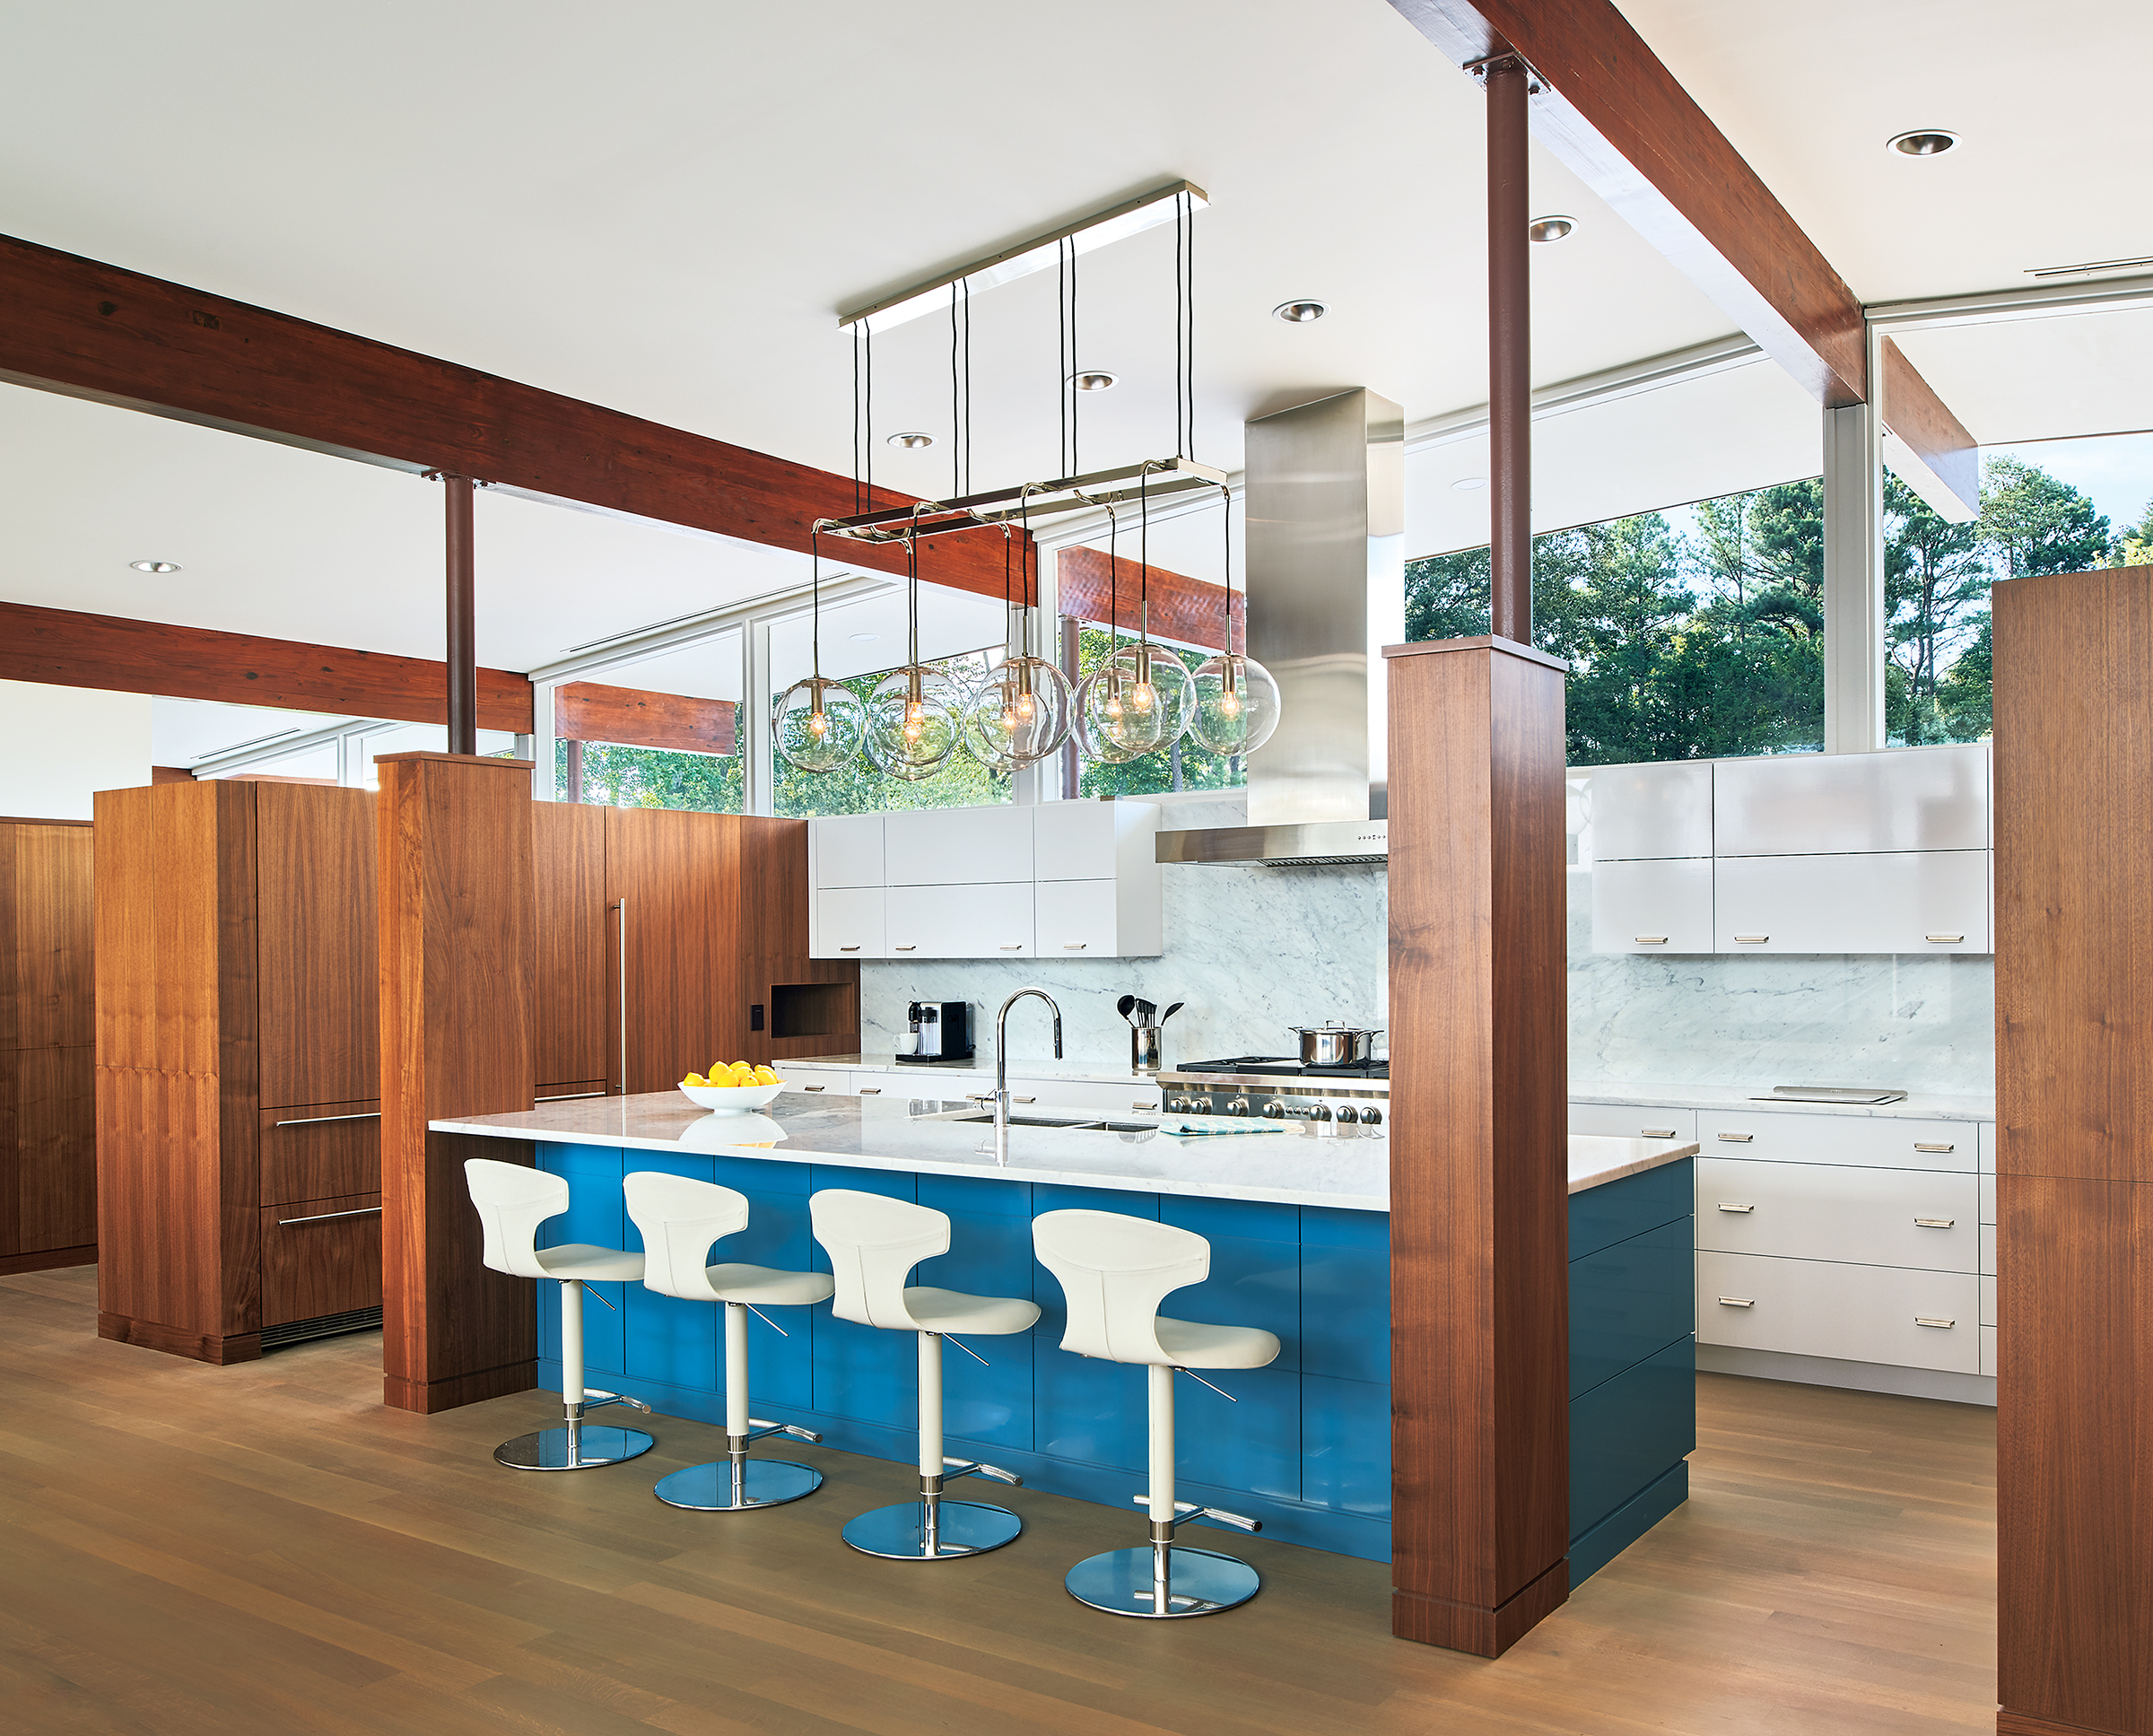 The owner chose the bold blue color of the island in the renovated kitchen.